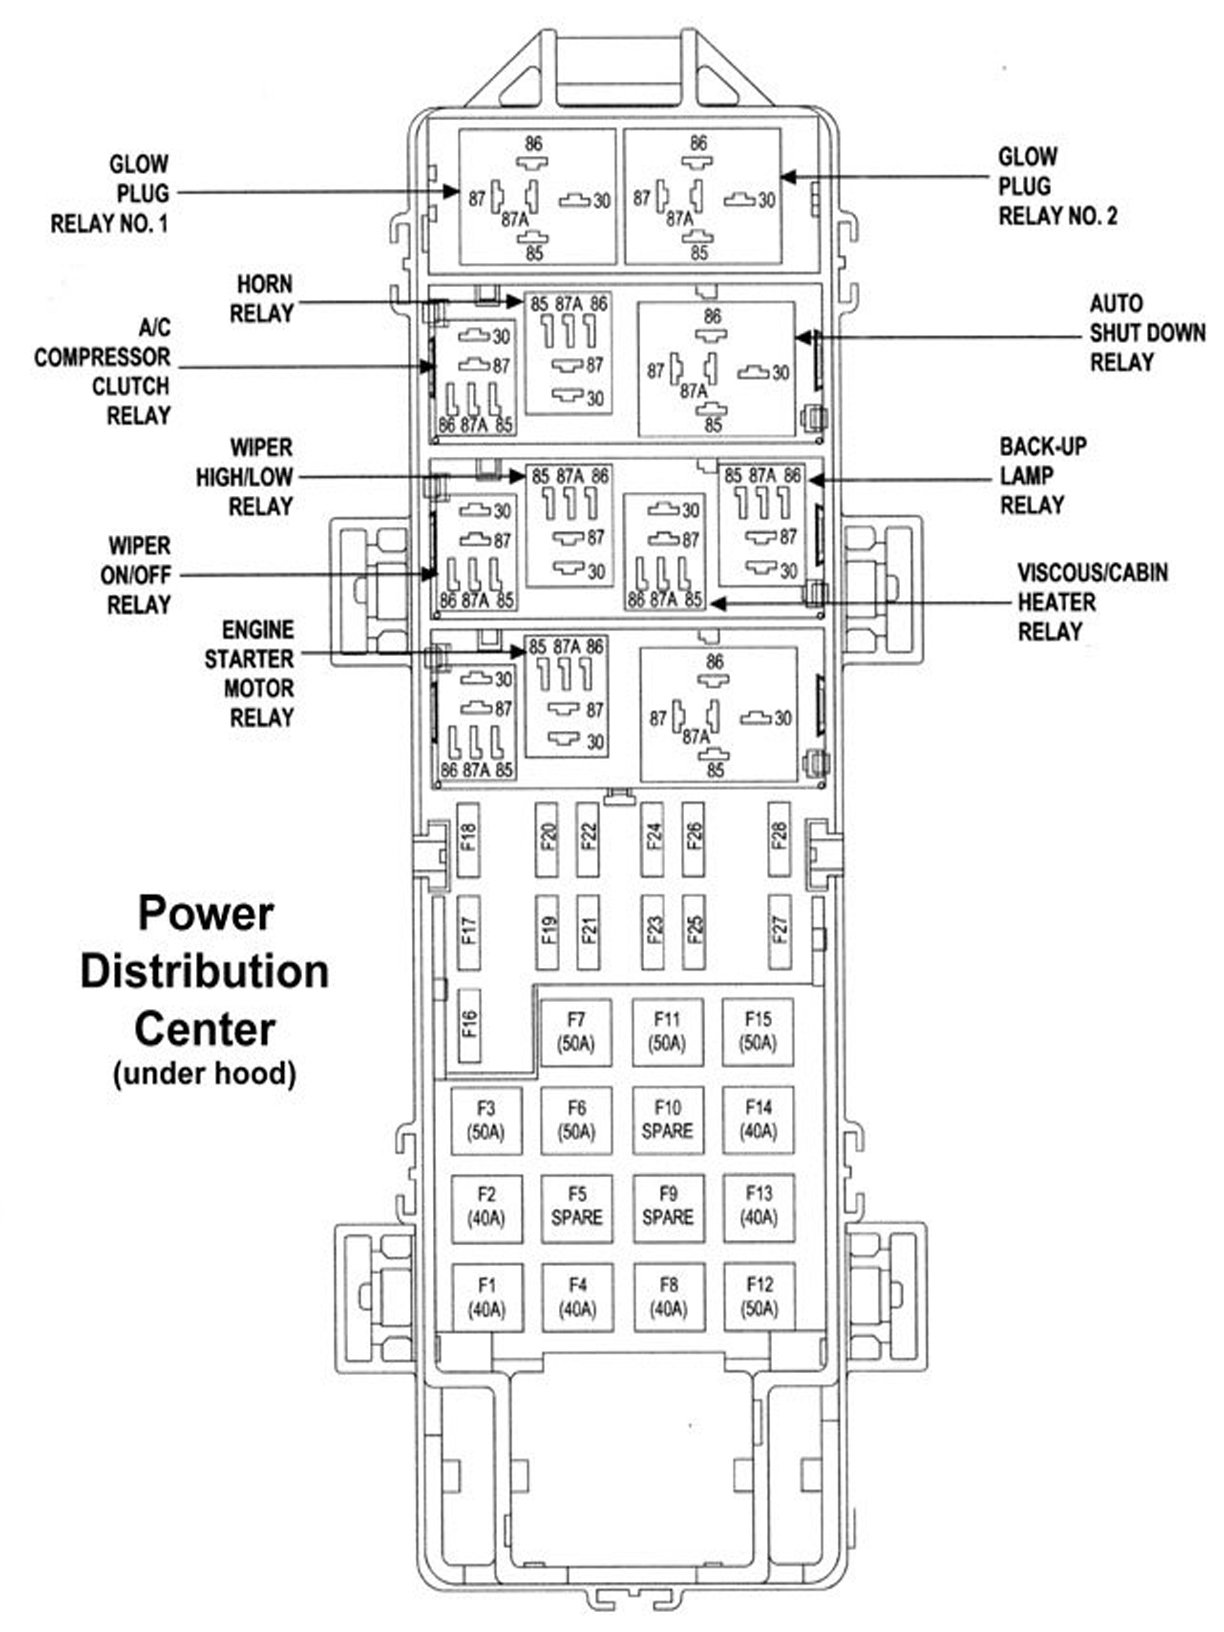 AAAAAAAAug 28 Fuse Box 04 91415 fuse box 96 jeep cherokee wiring diagram simonand 1998 jeep wrangler under hood fuse box diagram at edmiracle.co